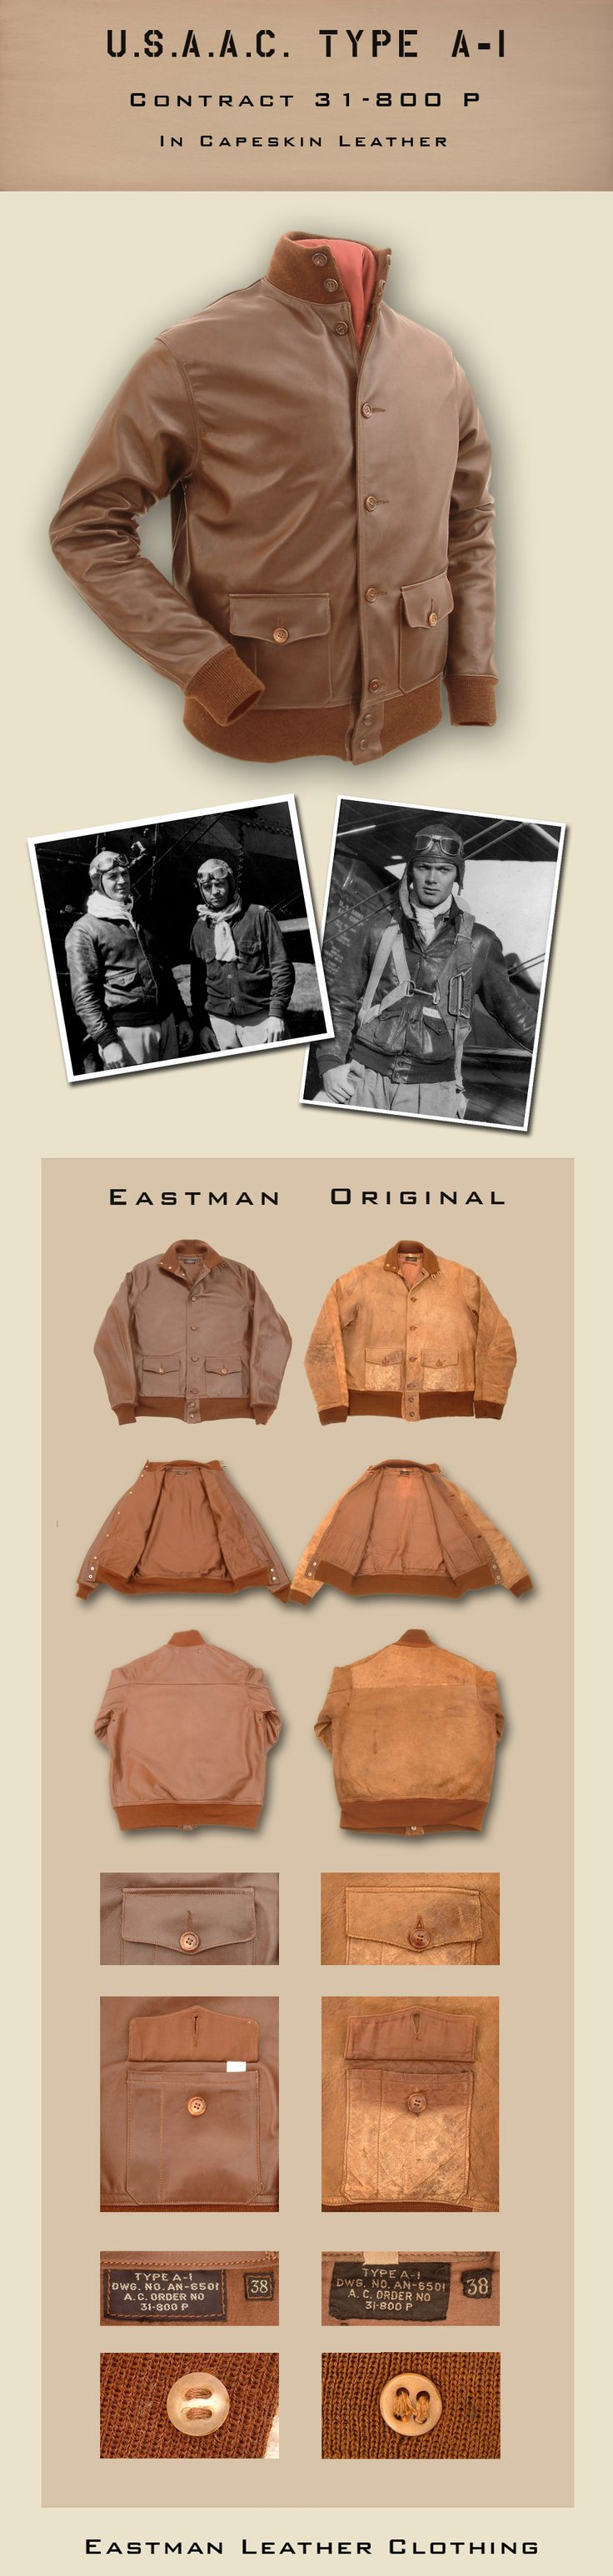 Eastman Leather Clothing - US Flight Jackets : Original Maker Jackets : A1cape